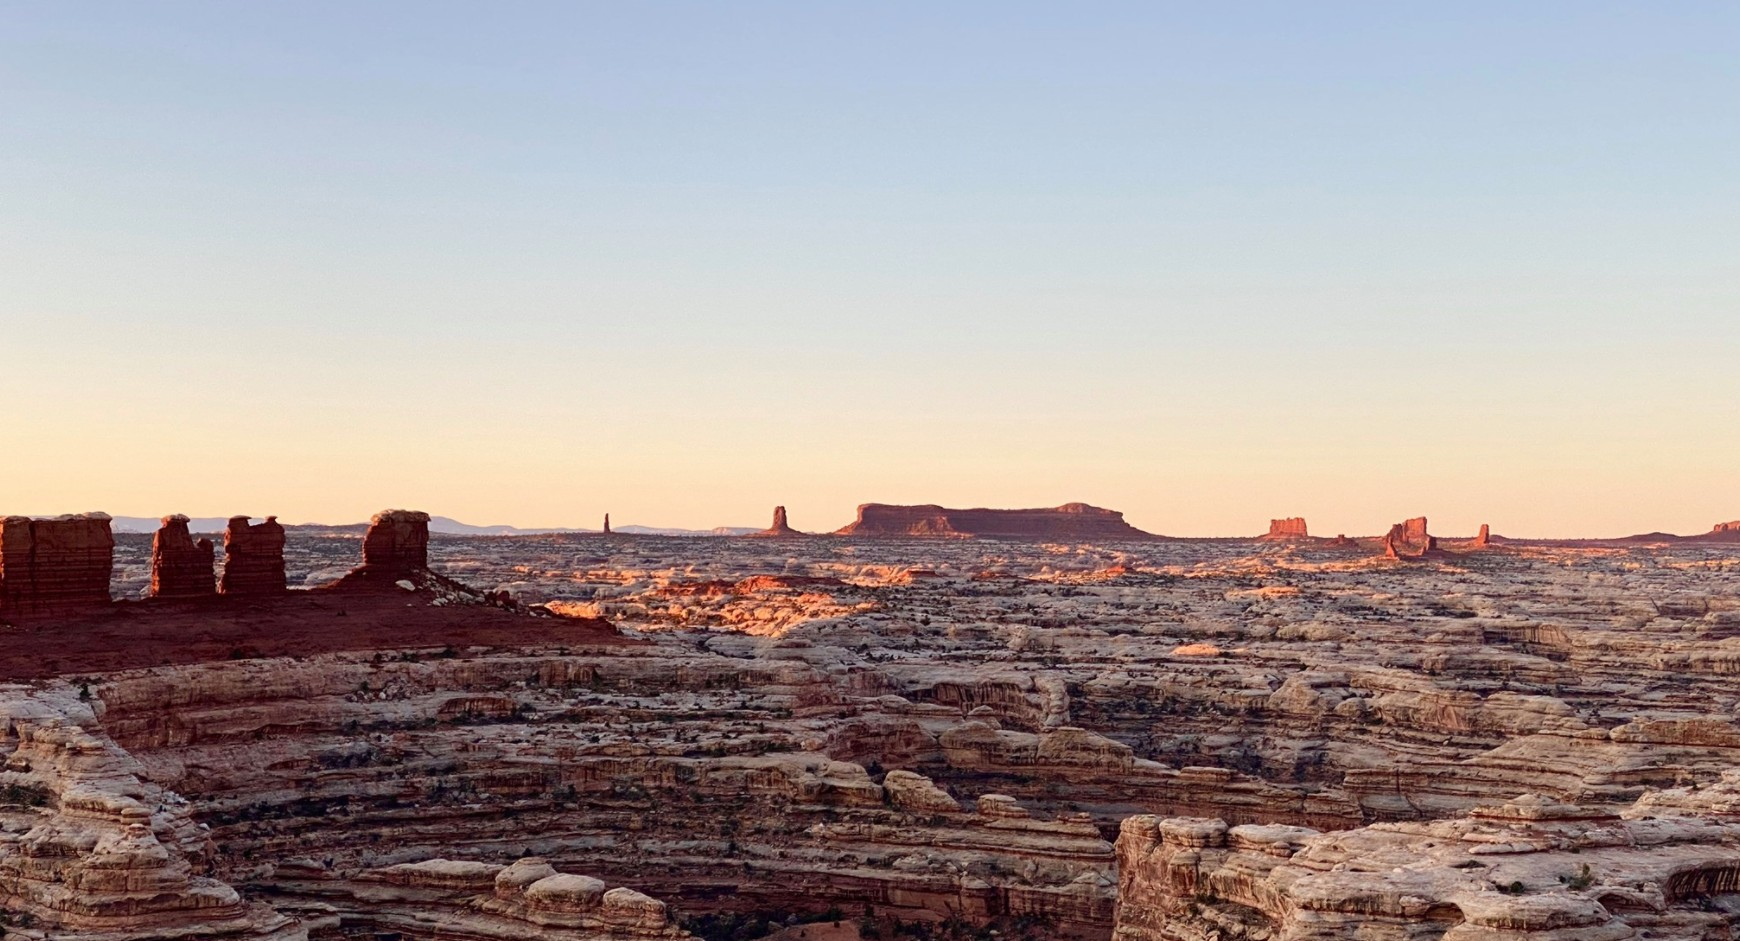 A view of Canyonlands National Park is seen a photo from the National Park Service.